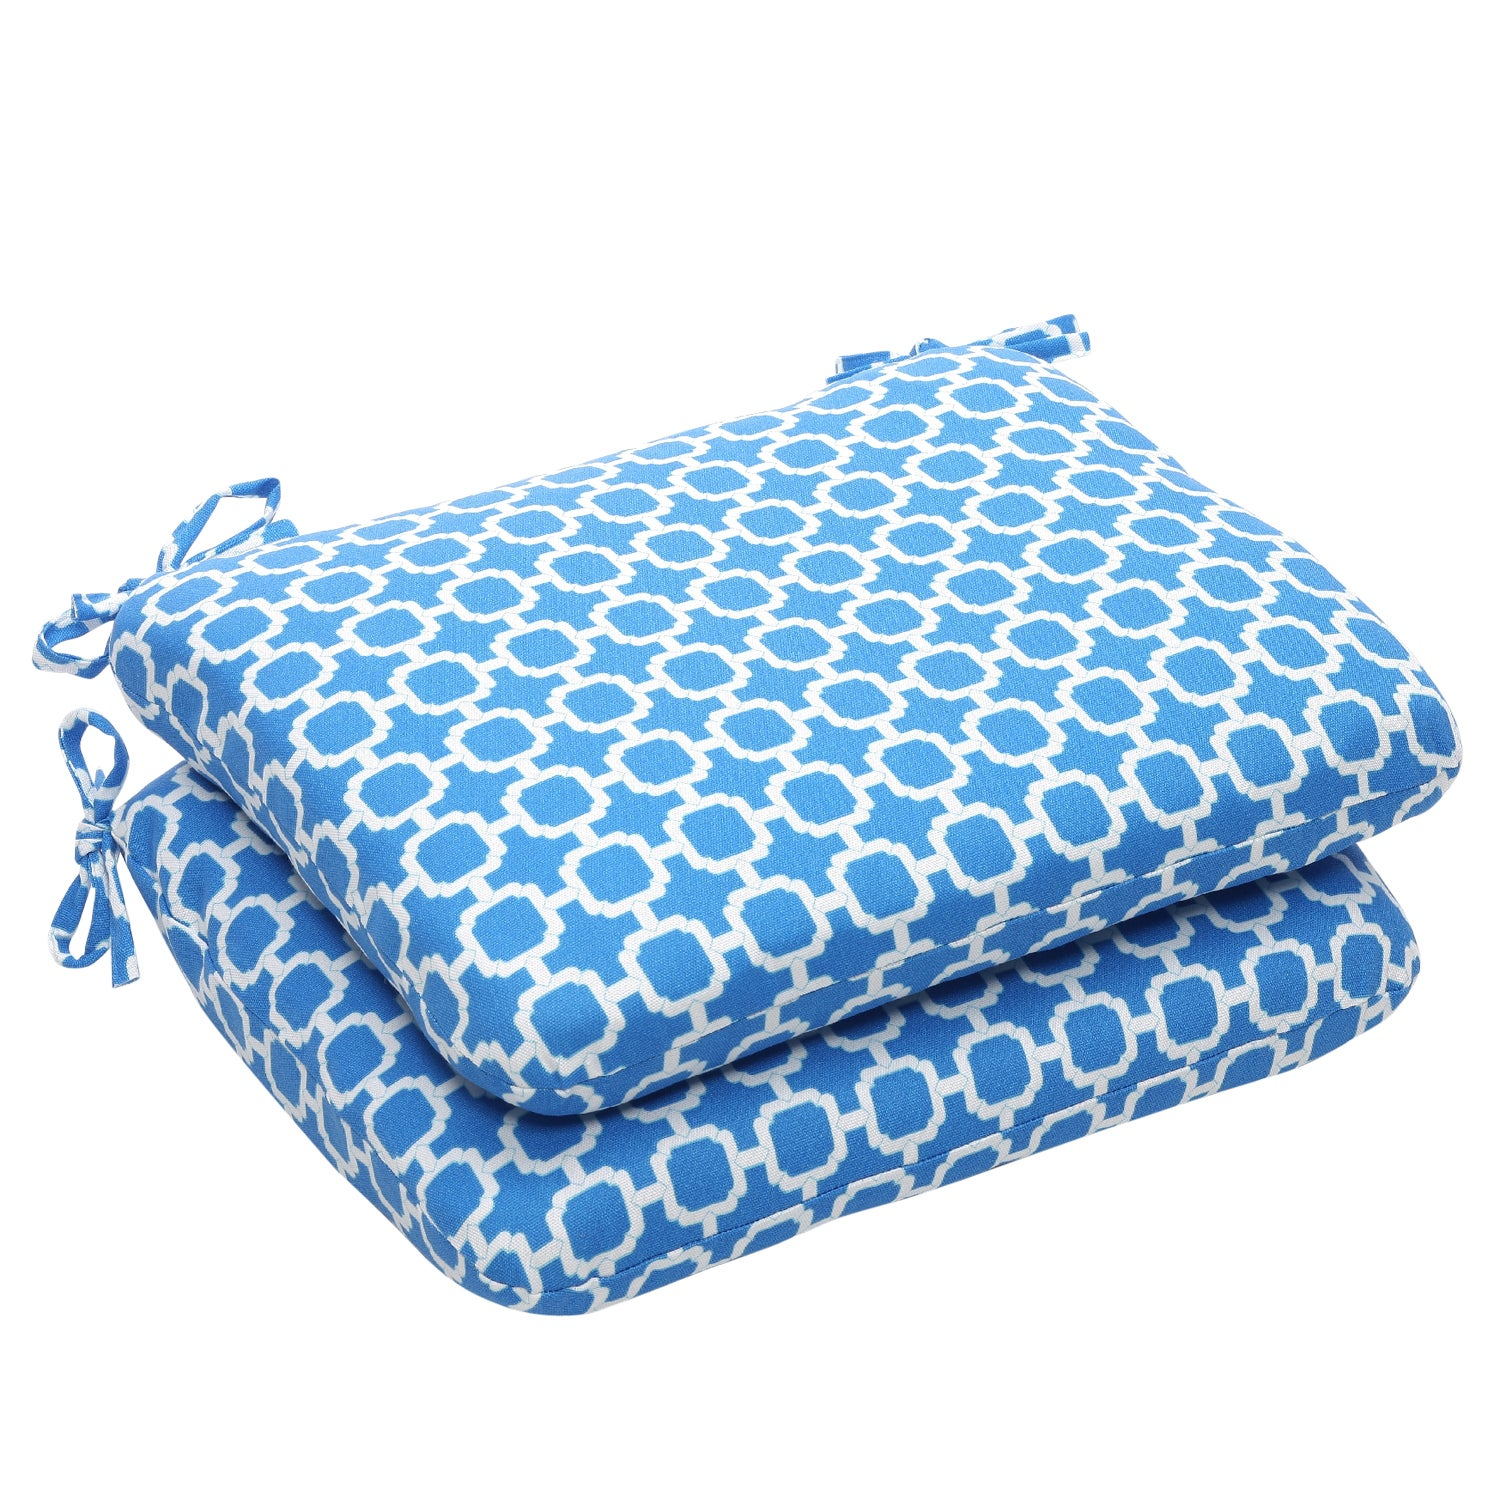 Outdoor Blue and White Geometric Rounded Seat Cushions